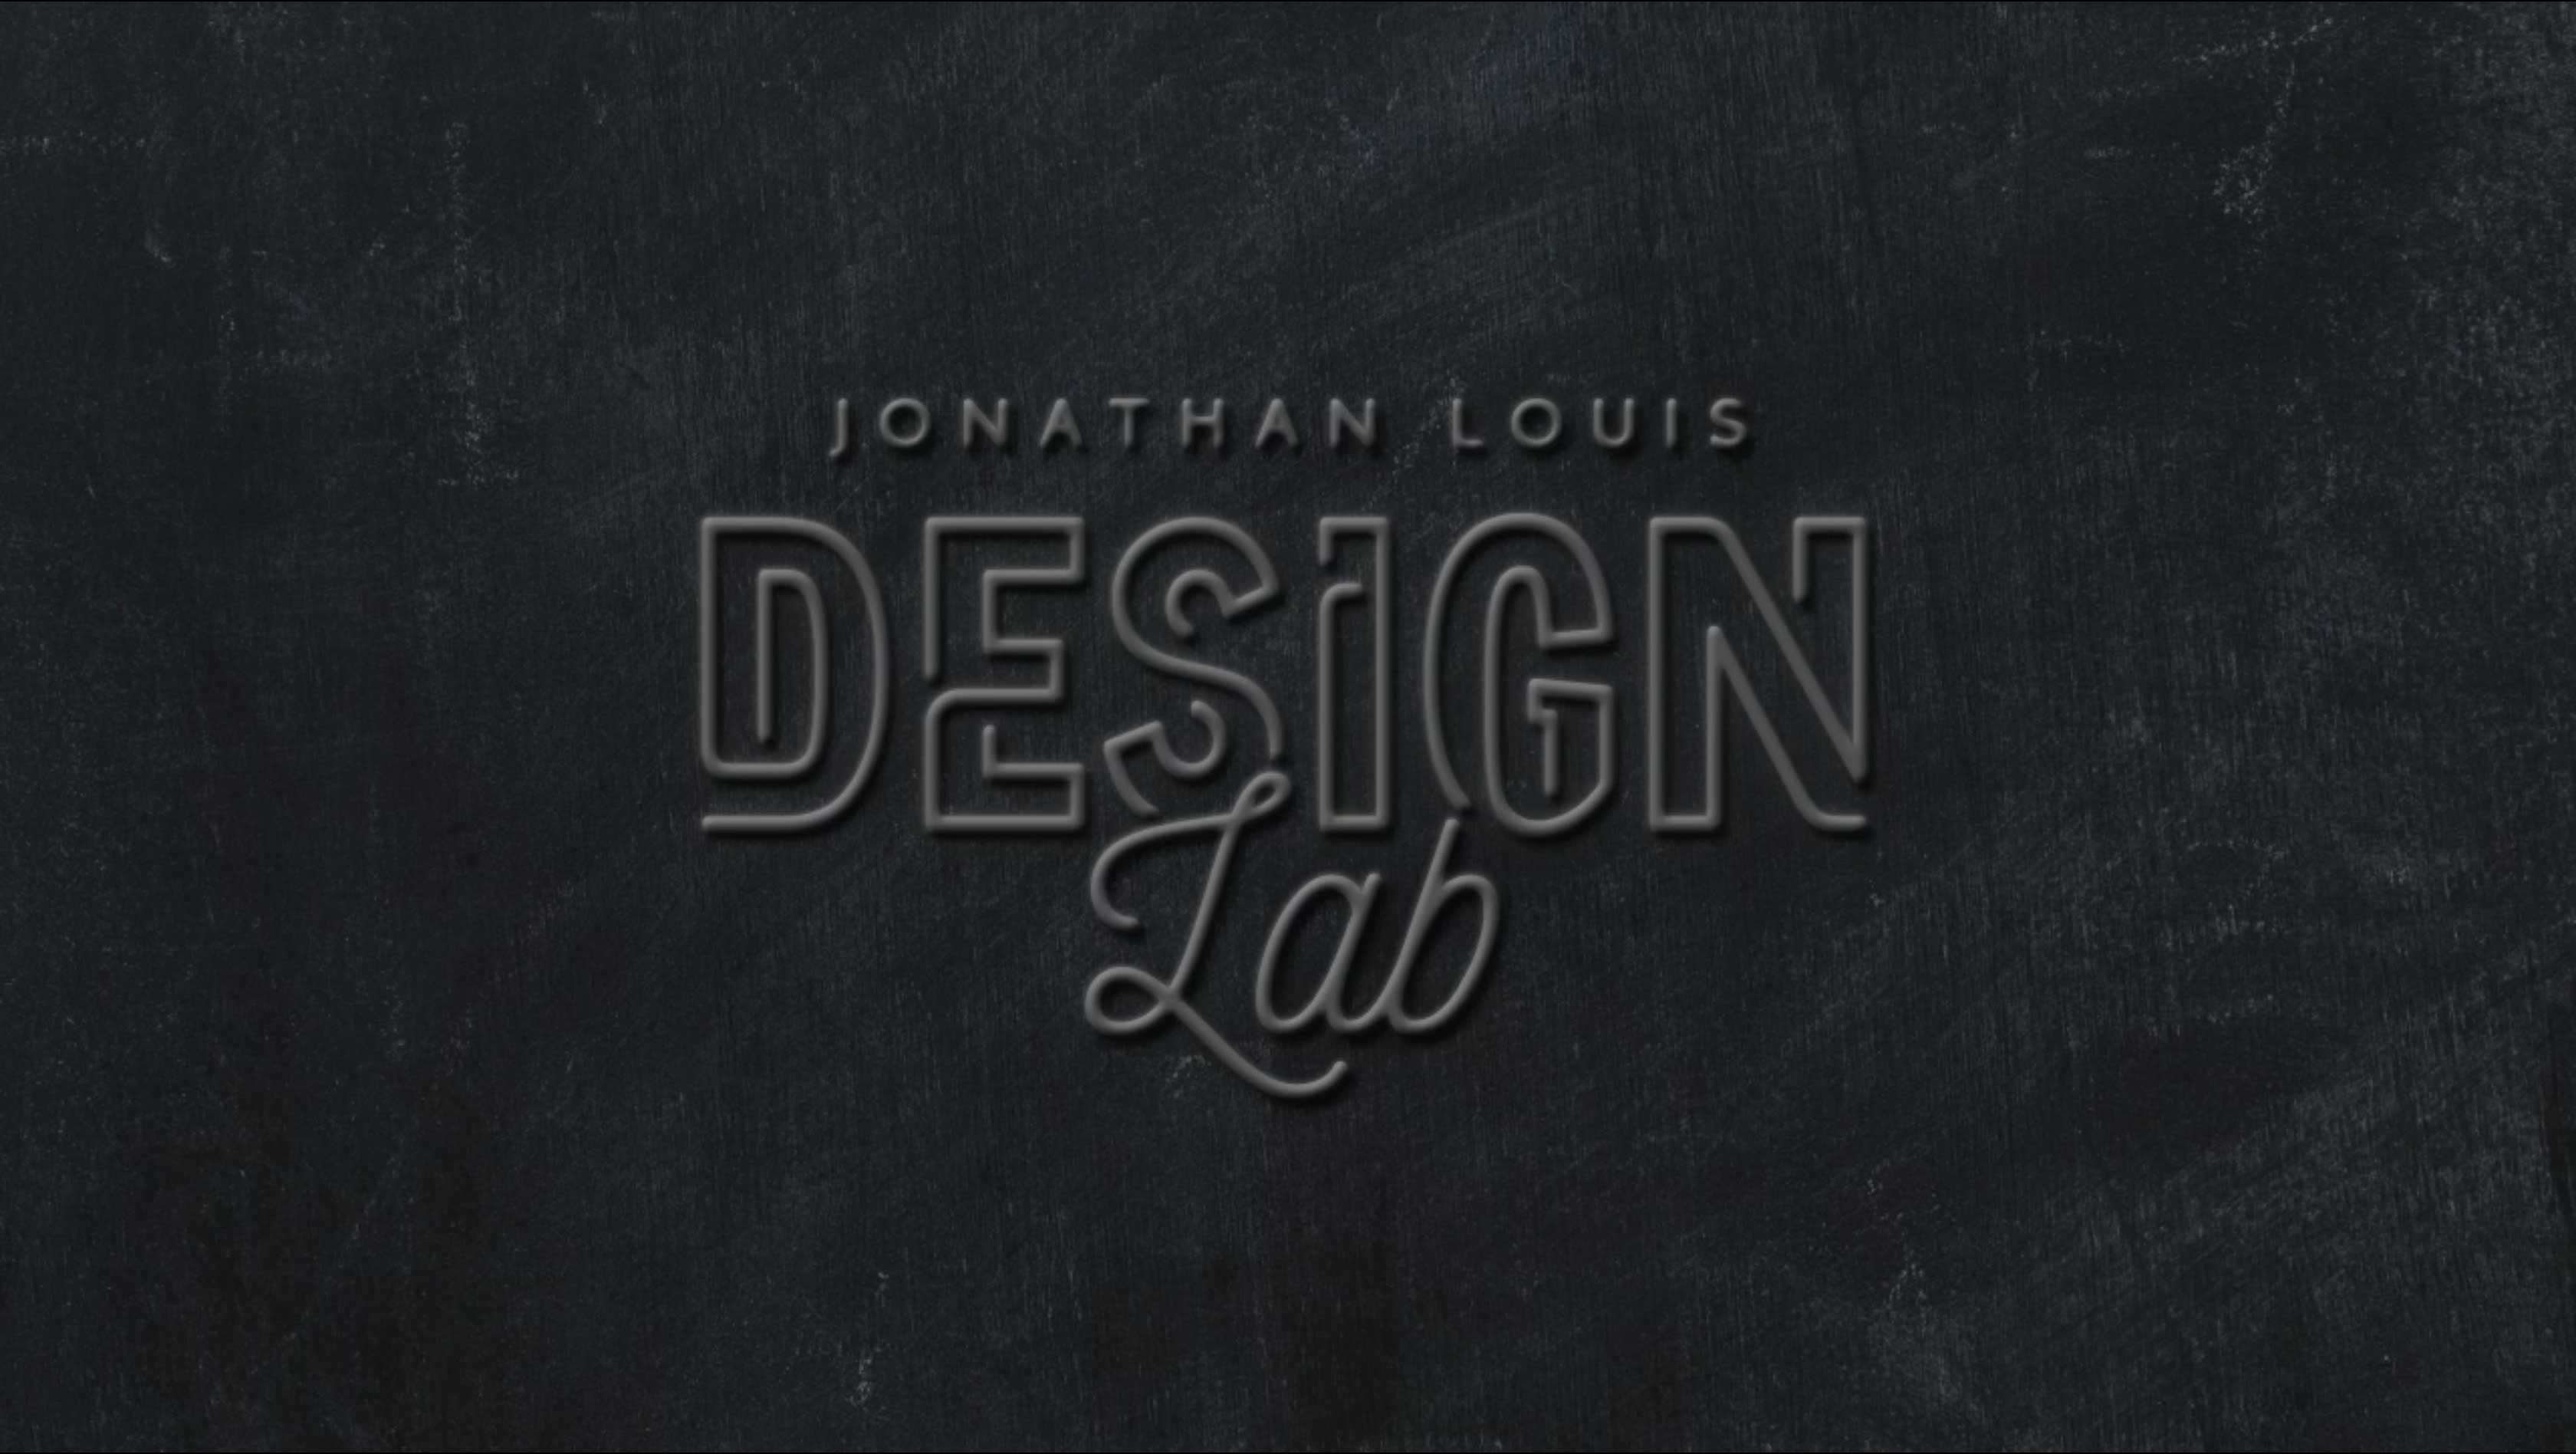 Jonathan Louis Design Lab